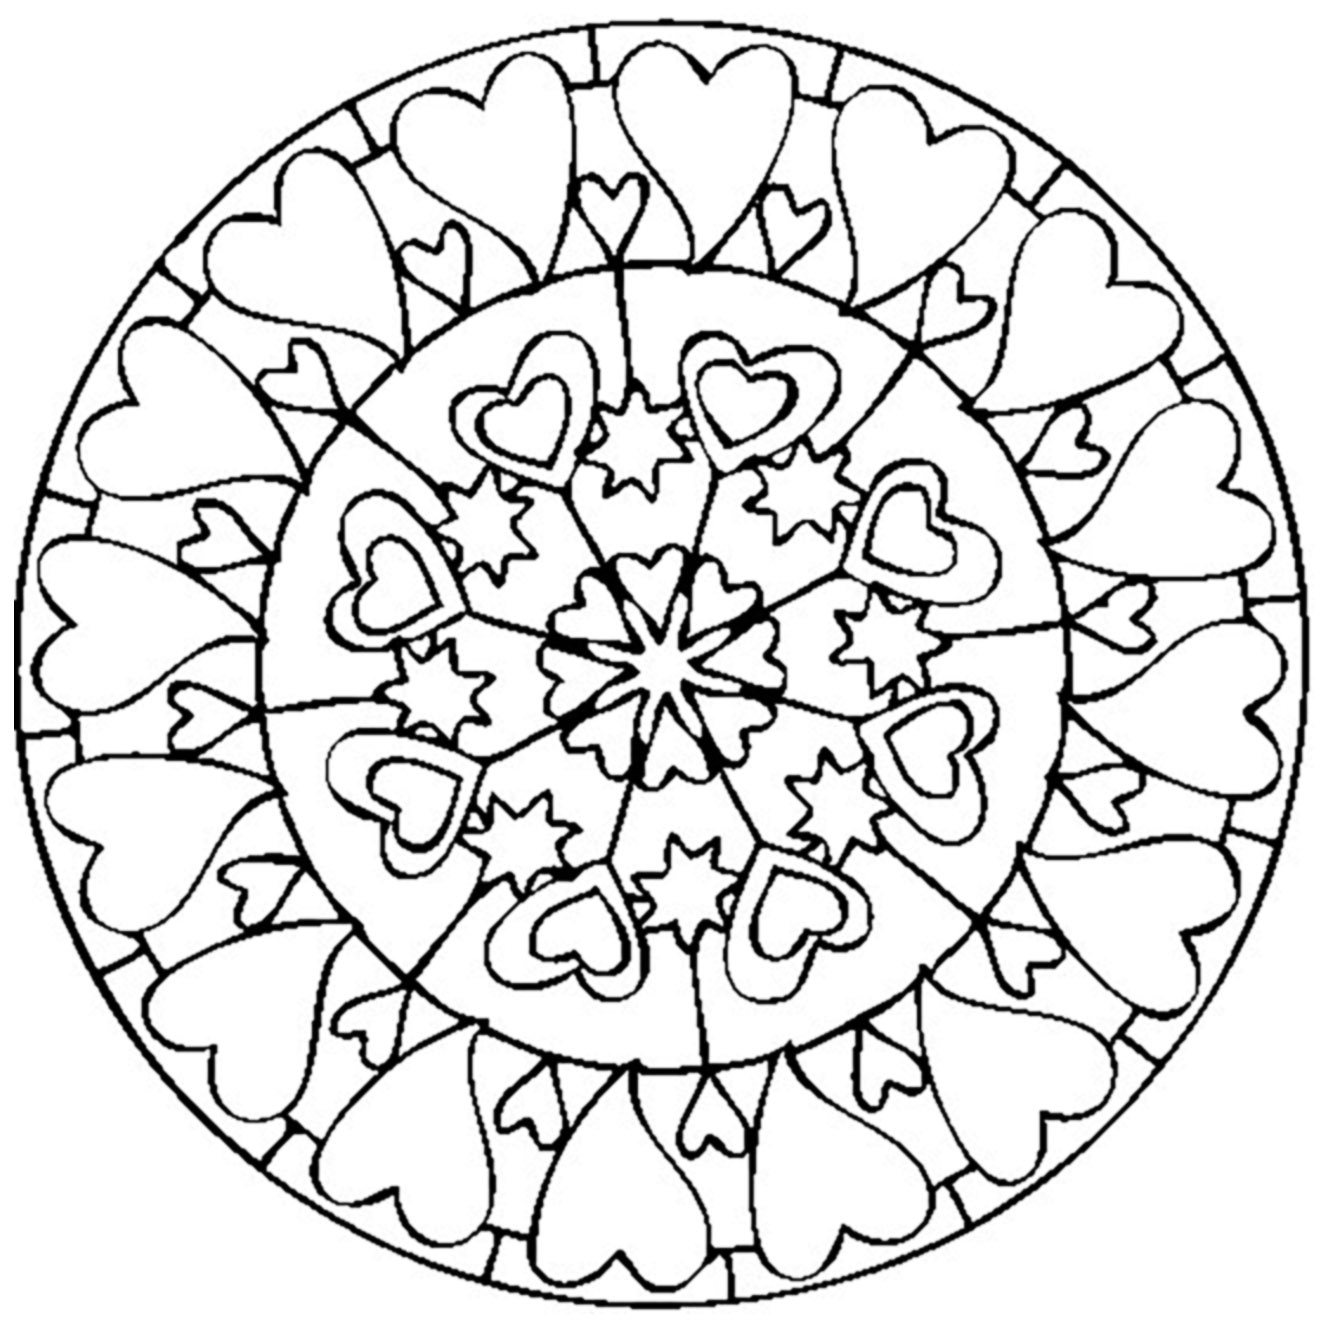 Coloring mandala valentines day love